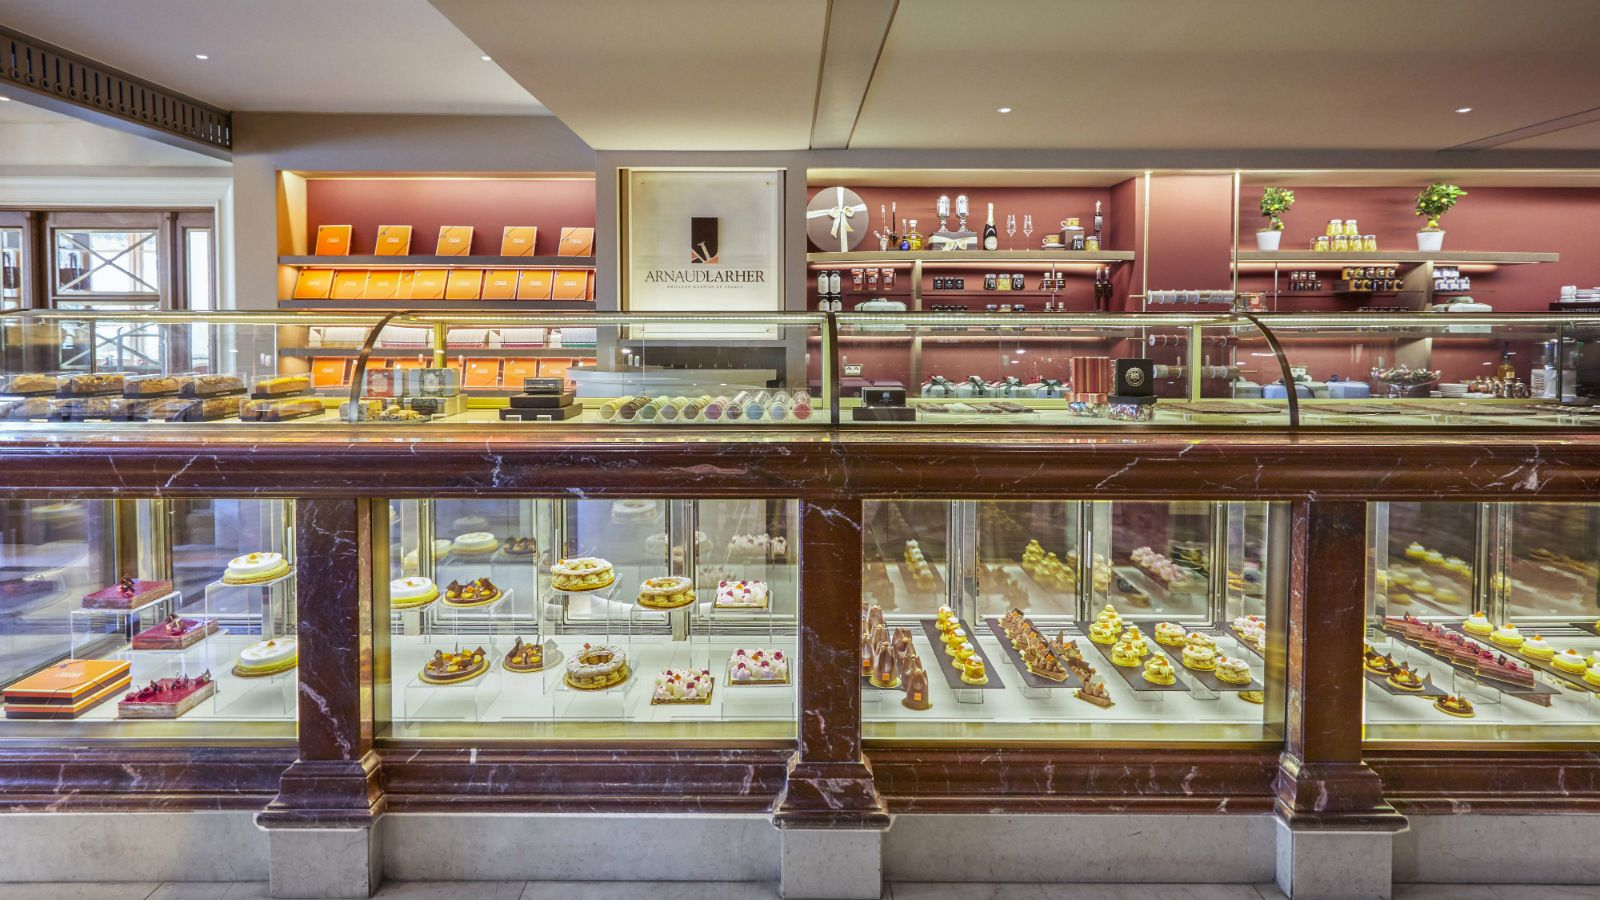 GB-Corner-Gifts-and-Flavors-store-with-Arnaud-Larher-desserts-in-Athens-Hotel-Grande-Bretagne